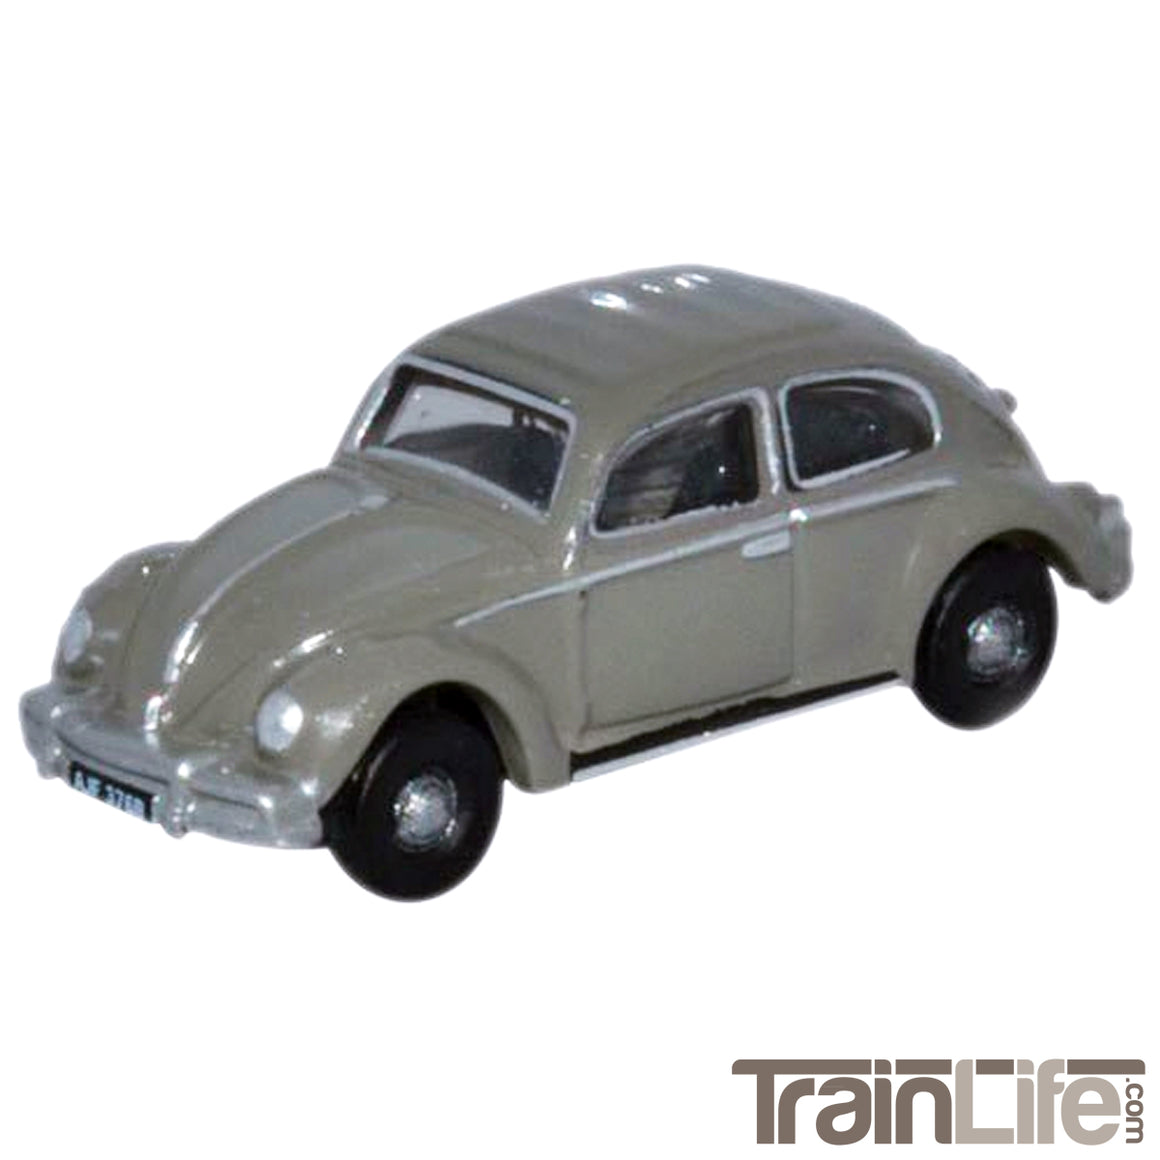 N Scale: Volkswagen Beetle - Anthracite